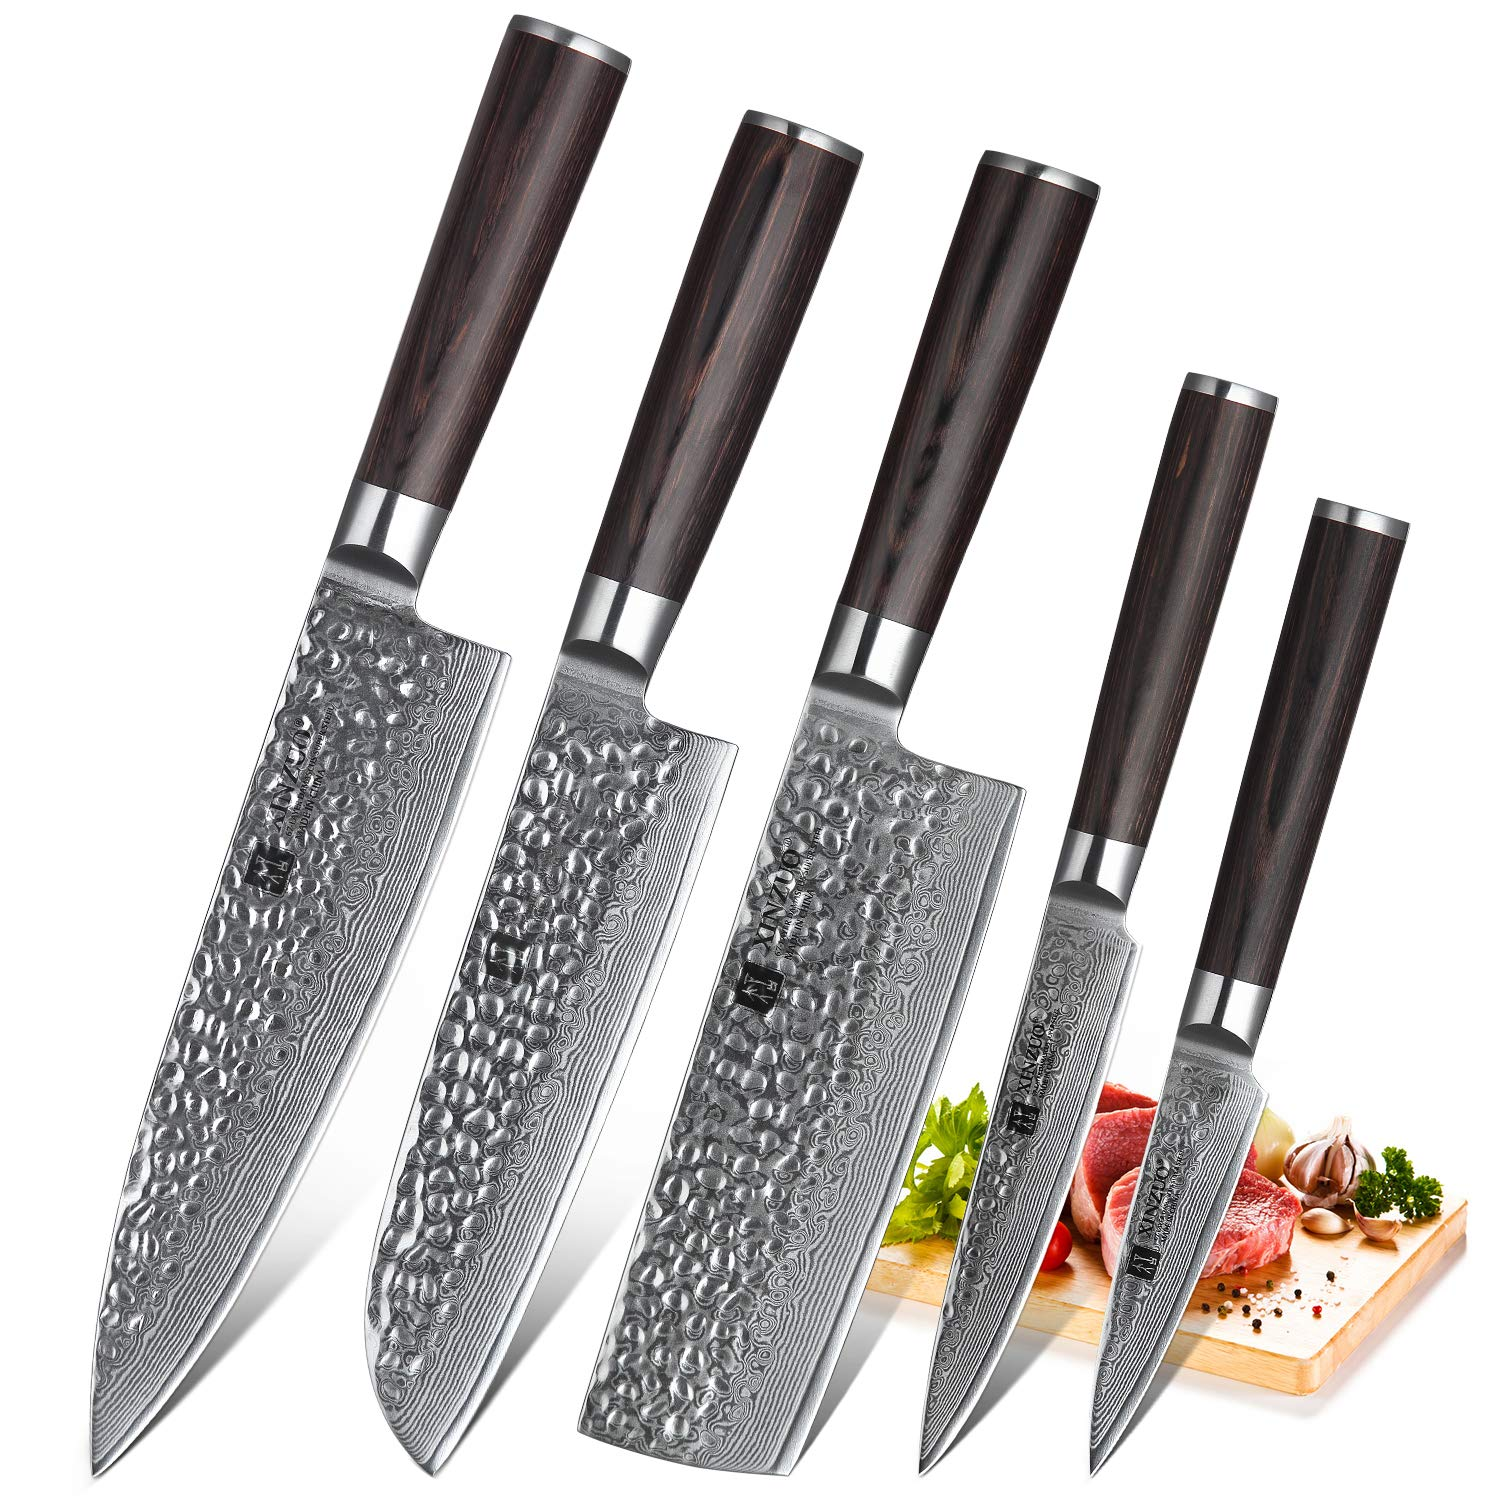 XINZUO 5-Piece Damascus Kitchen Knife Set Japanese Steel, Nakiri Knife Slicing Hammered Forging Damascus Kitchen Knife Professional Chef's Knife Cutlery Santoku Knife with Pakkawood Handle - He Series